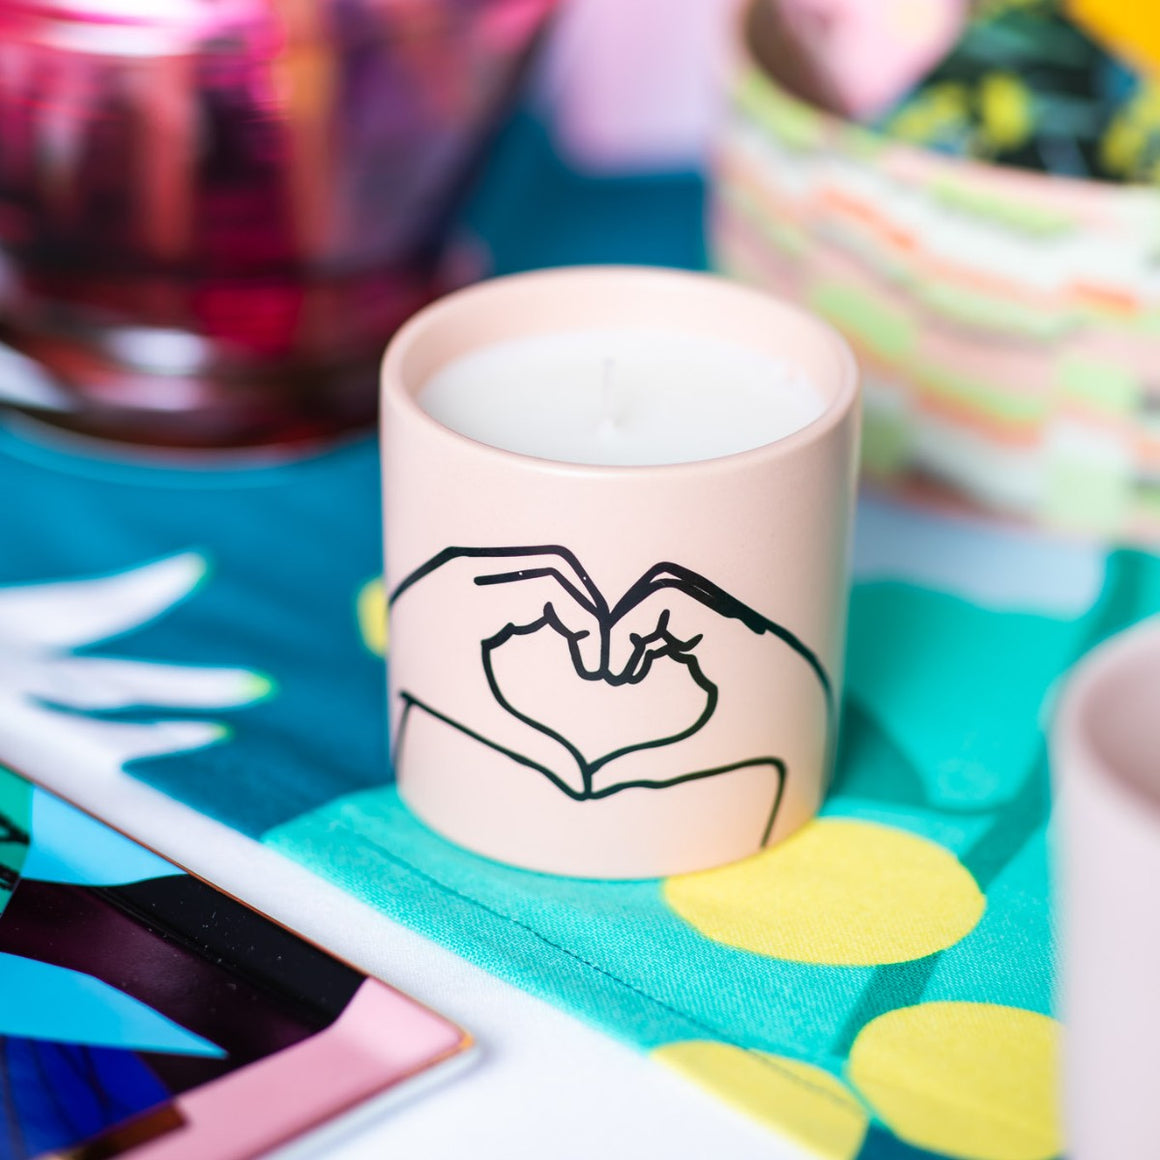 Image featuring a pastel pink ceramic candle which includes in the middle a graphic illustration two hands which have been shaped to look like a love heart. Surrounded by other homewares